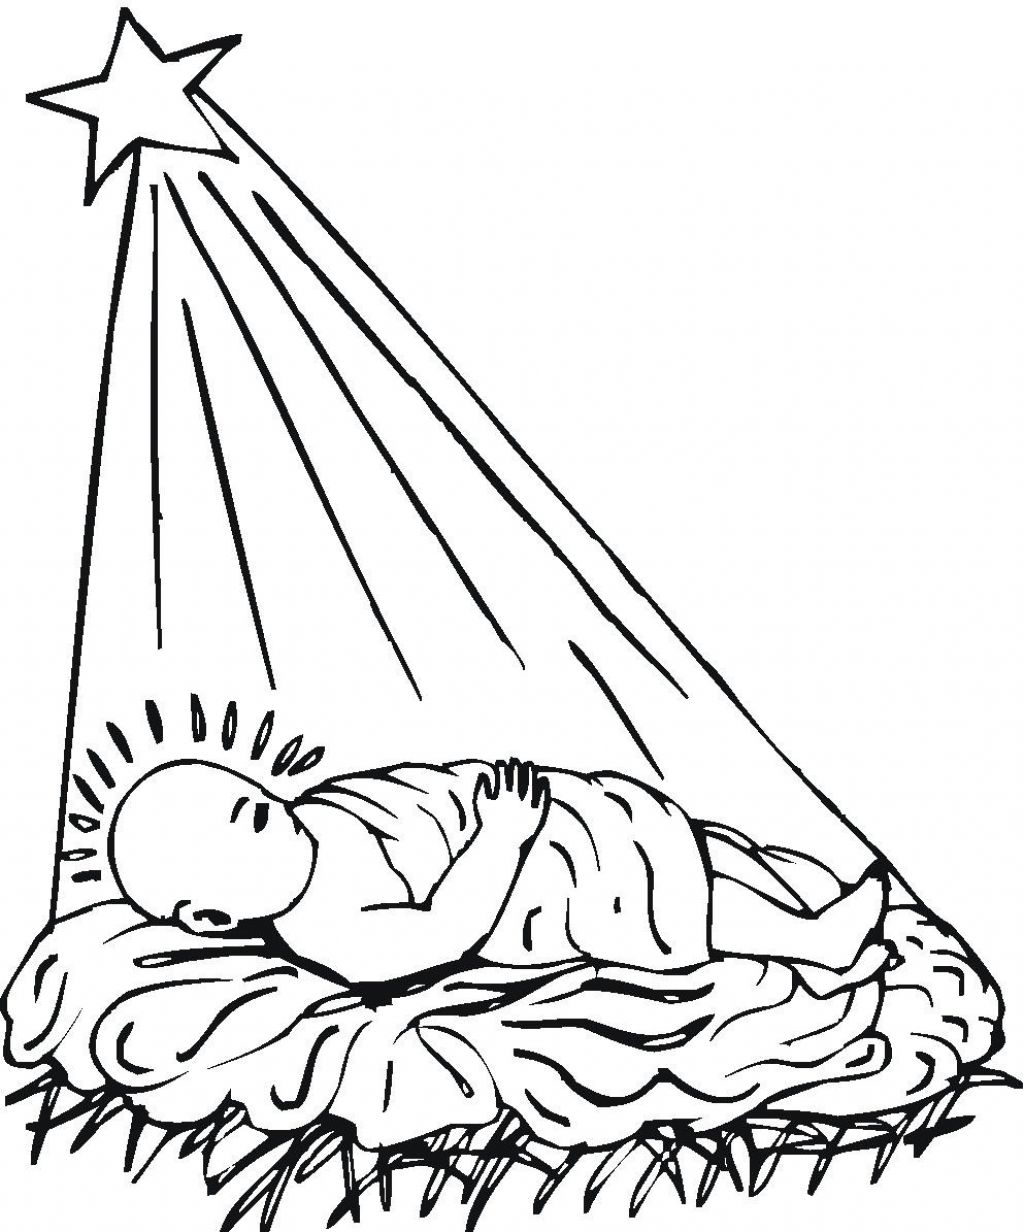 1024x1232 Jesus Birth Coloring Pages Fashionable Idea